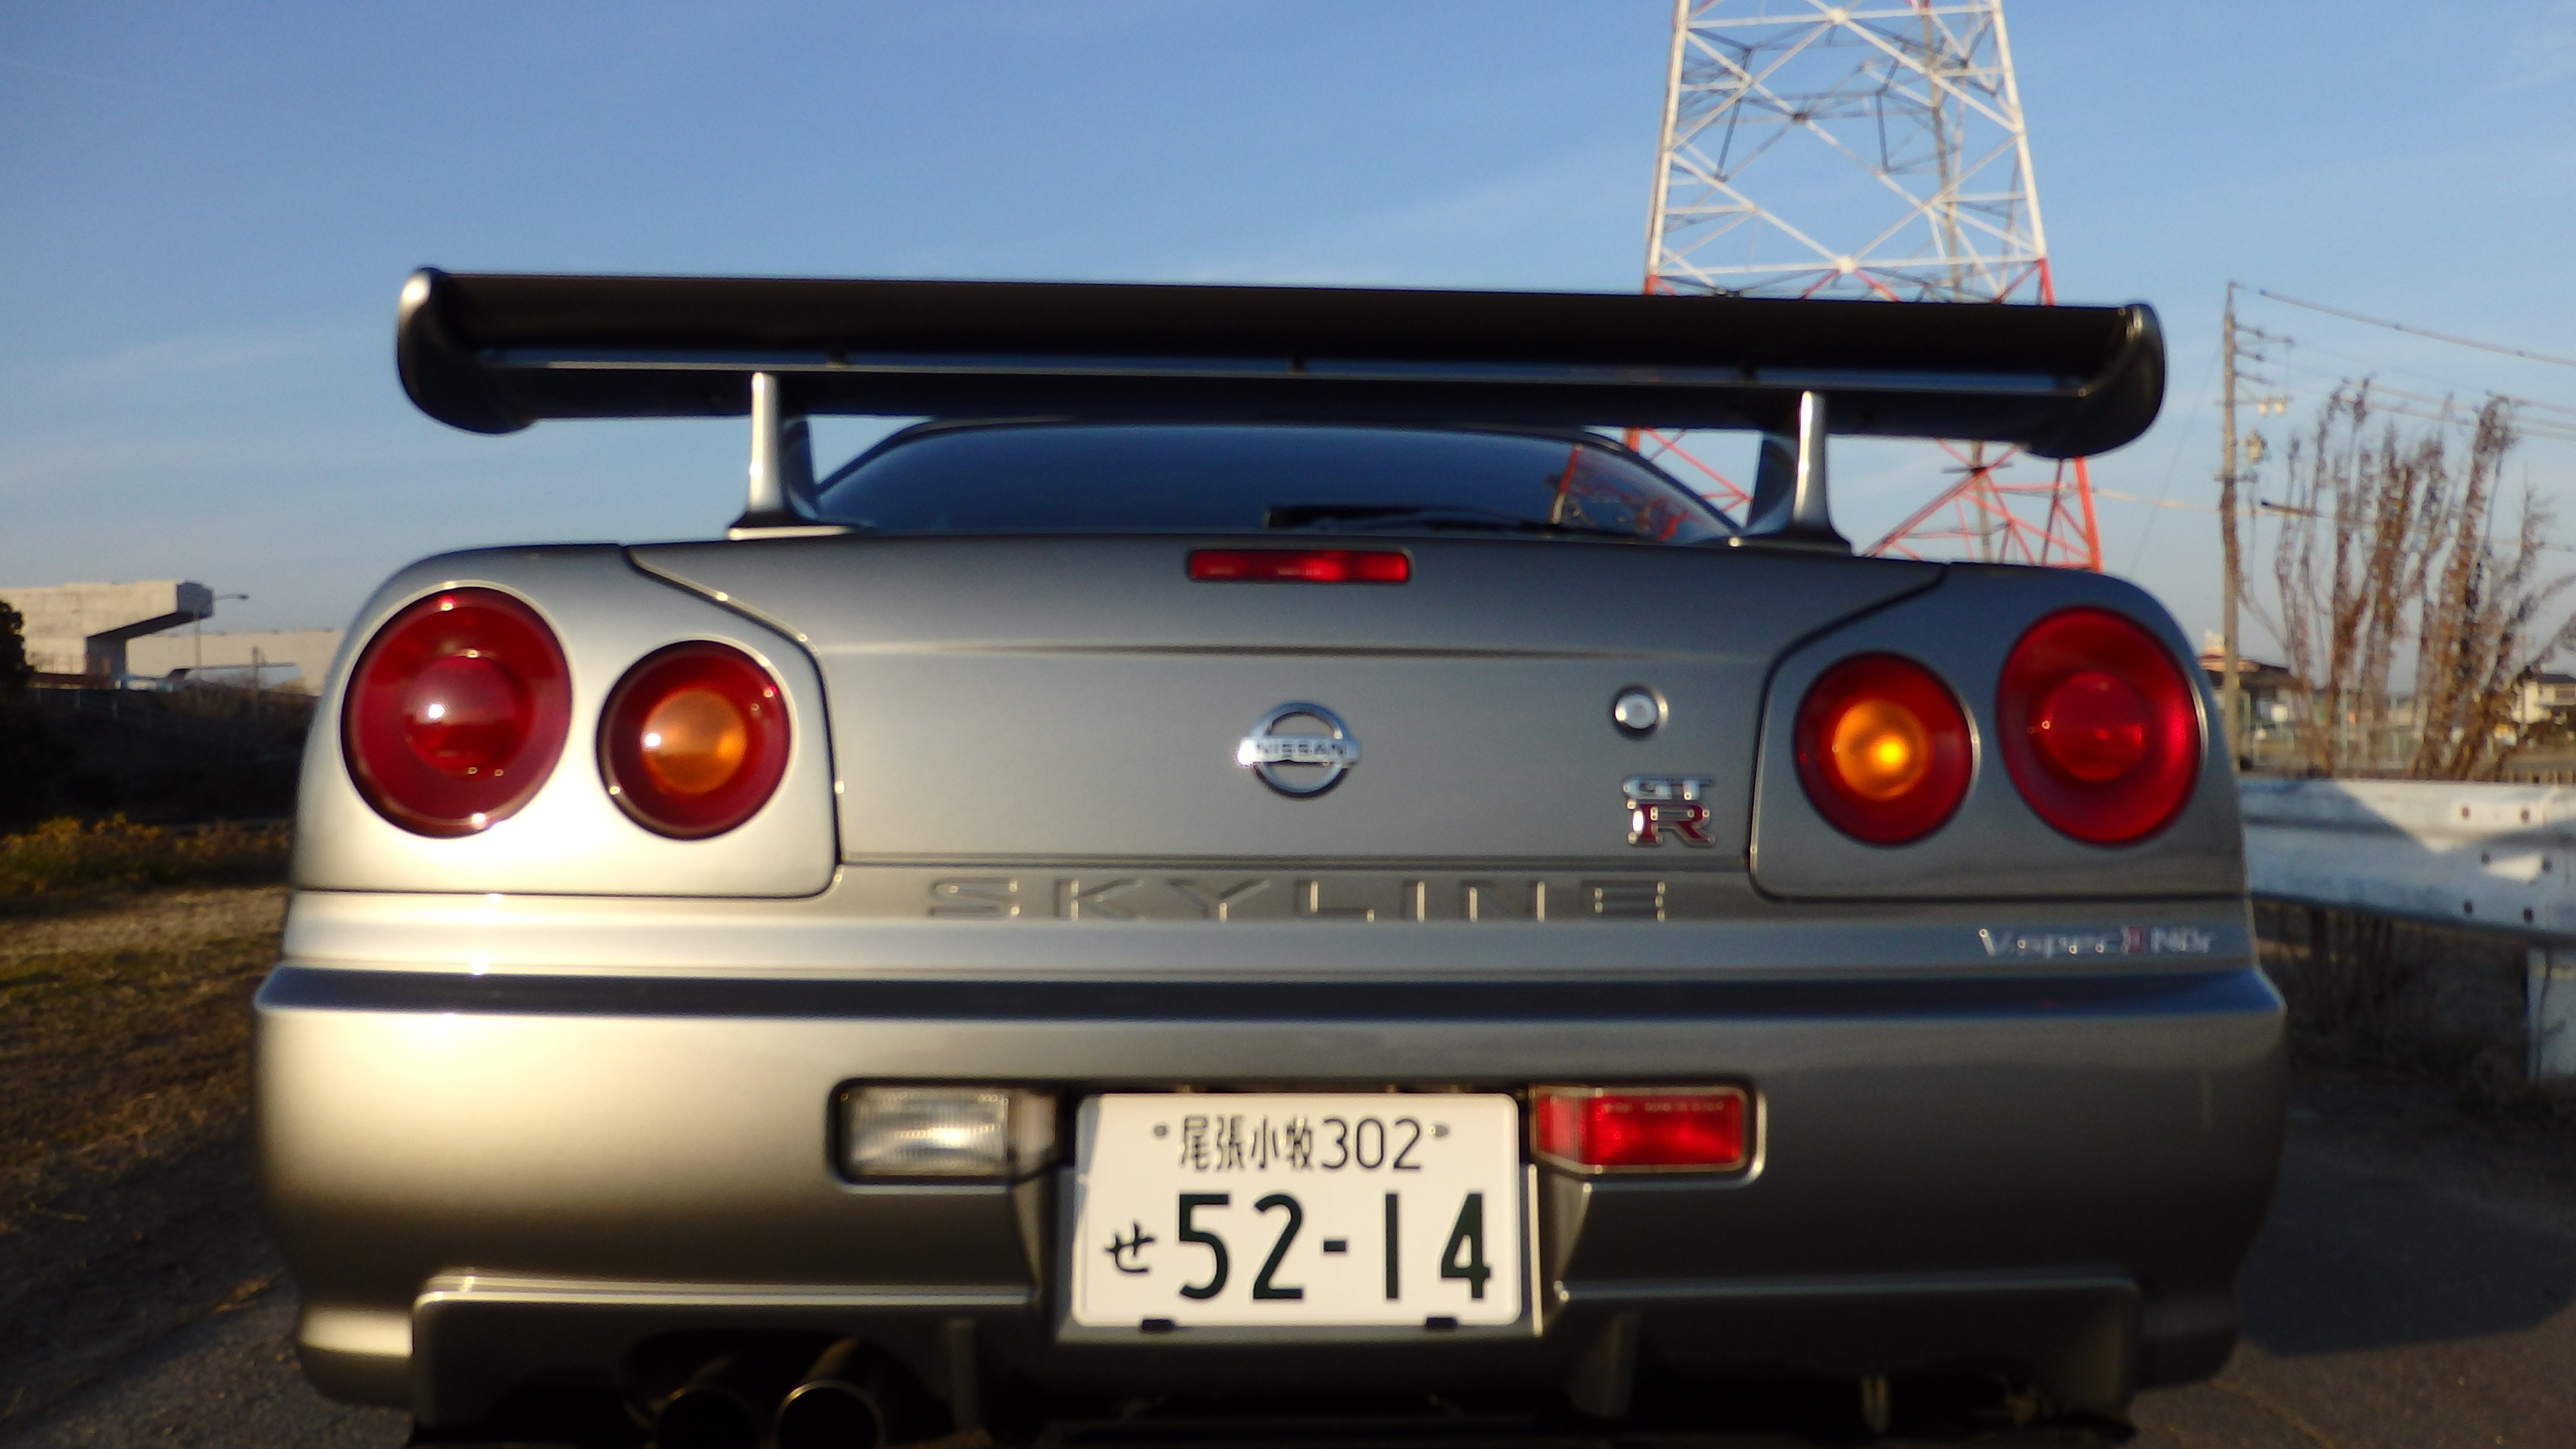 R34 Skyline For Sale Usa - 2019-2020 Top Car Updates by ...